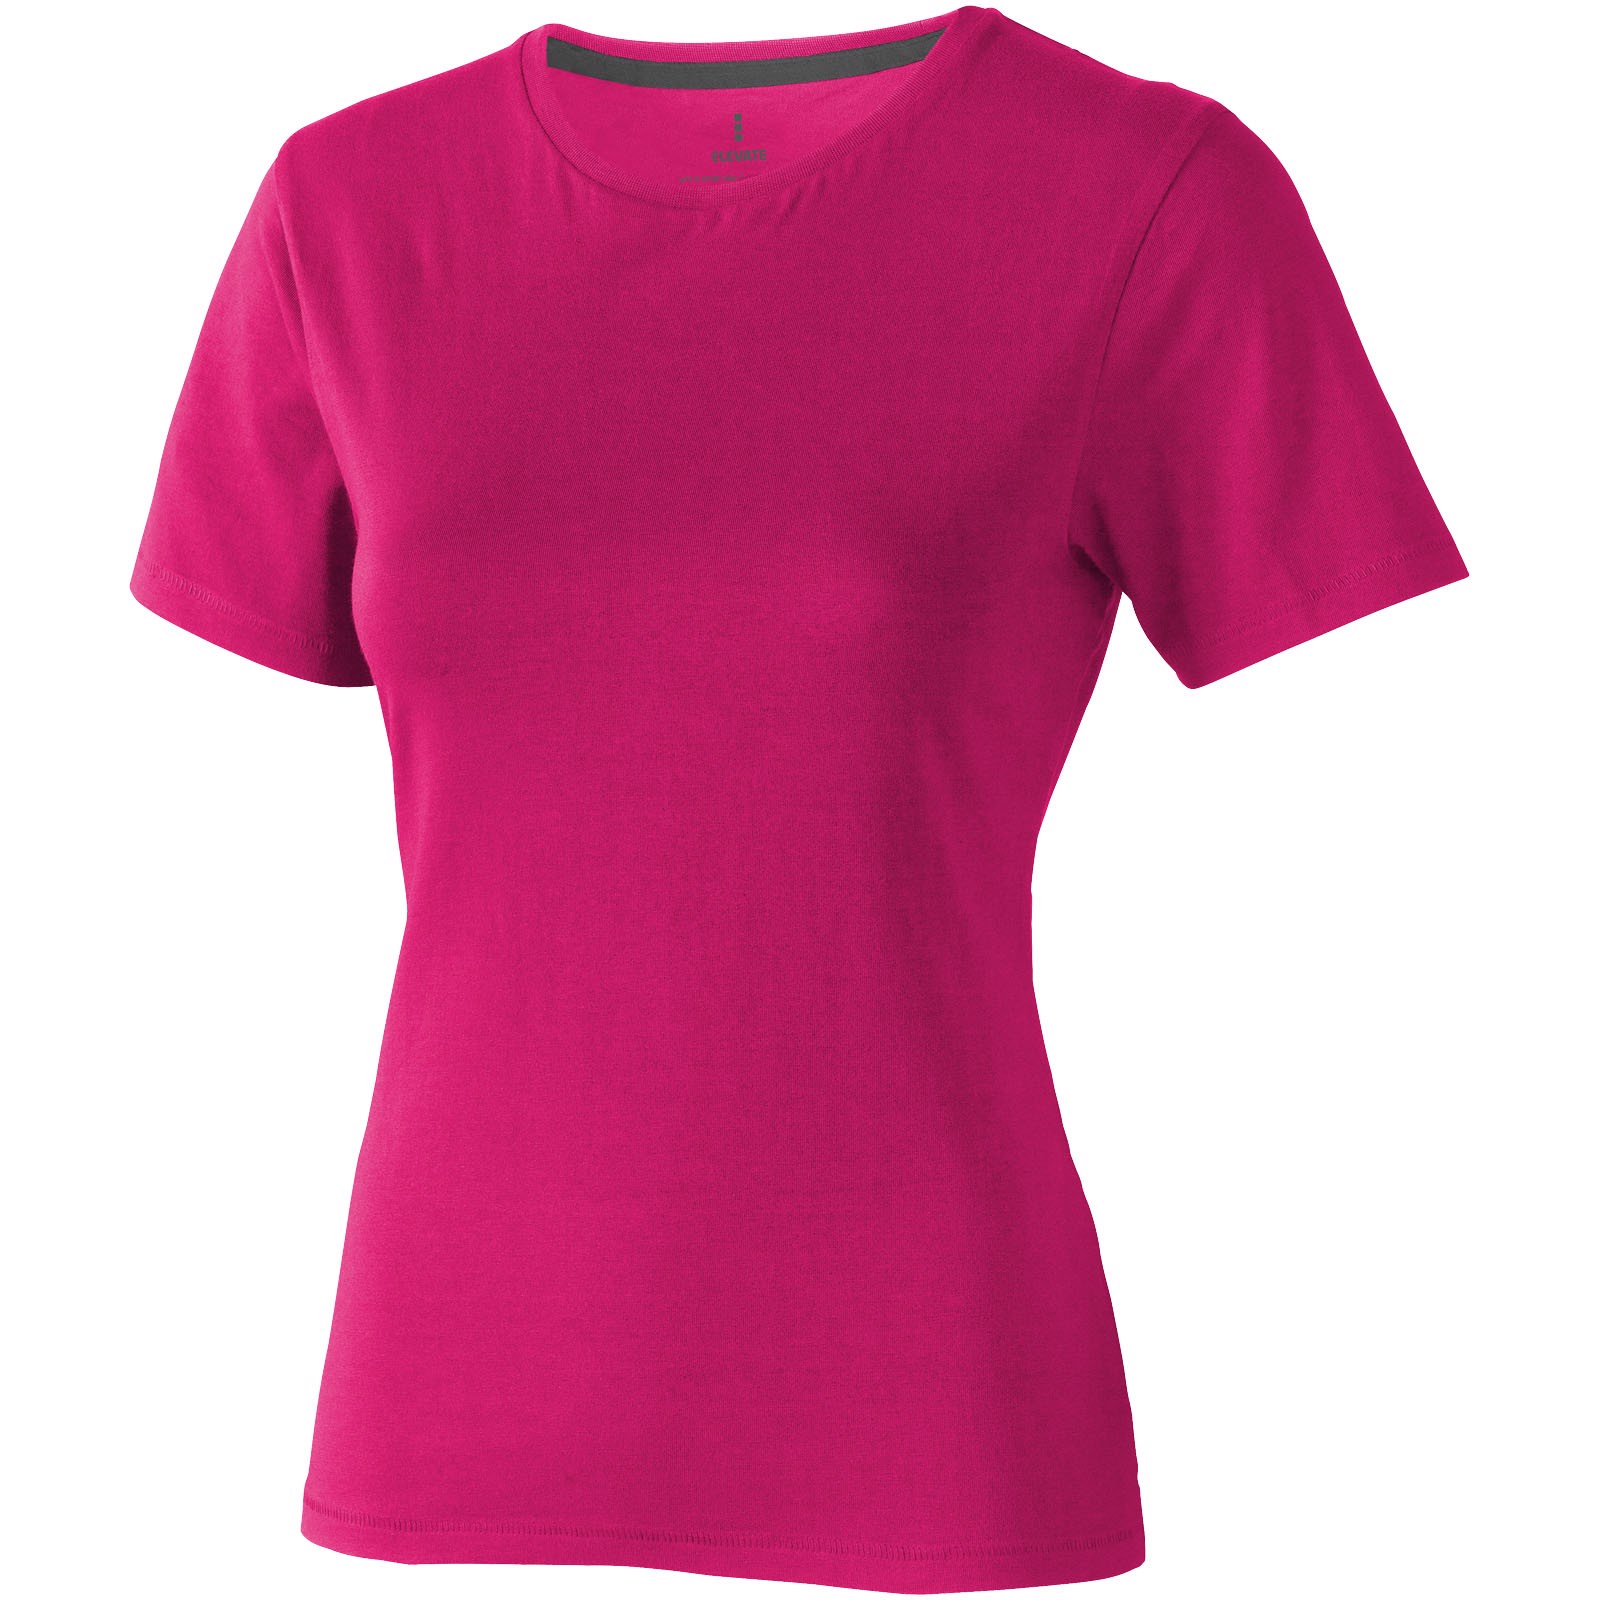 Nanaimo short sleeve women's T-shirt - Magenta / M